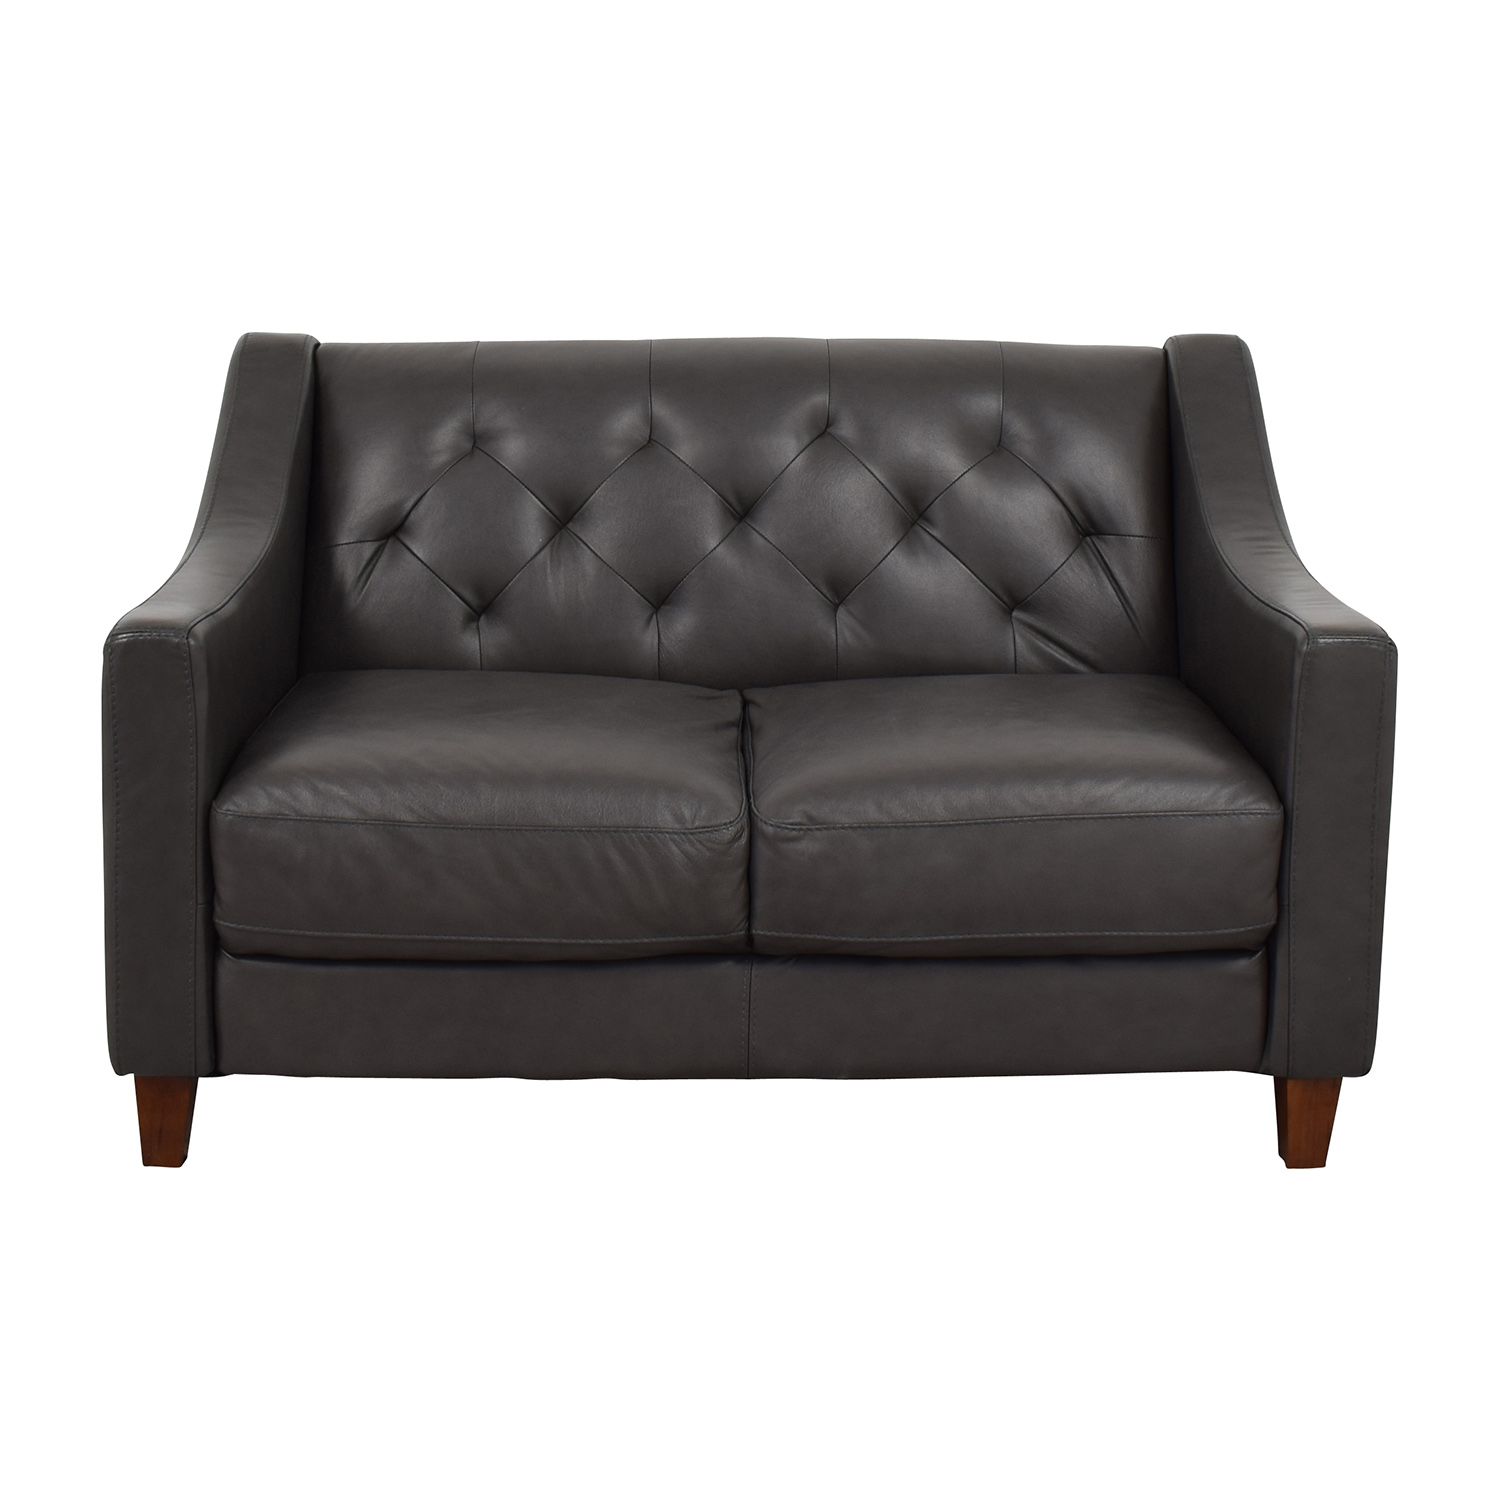 shop Macys Tufted Leather Loveseat Macys Sofas